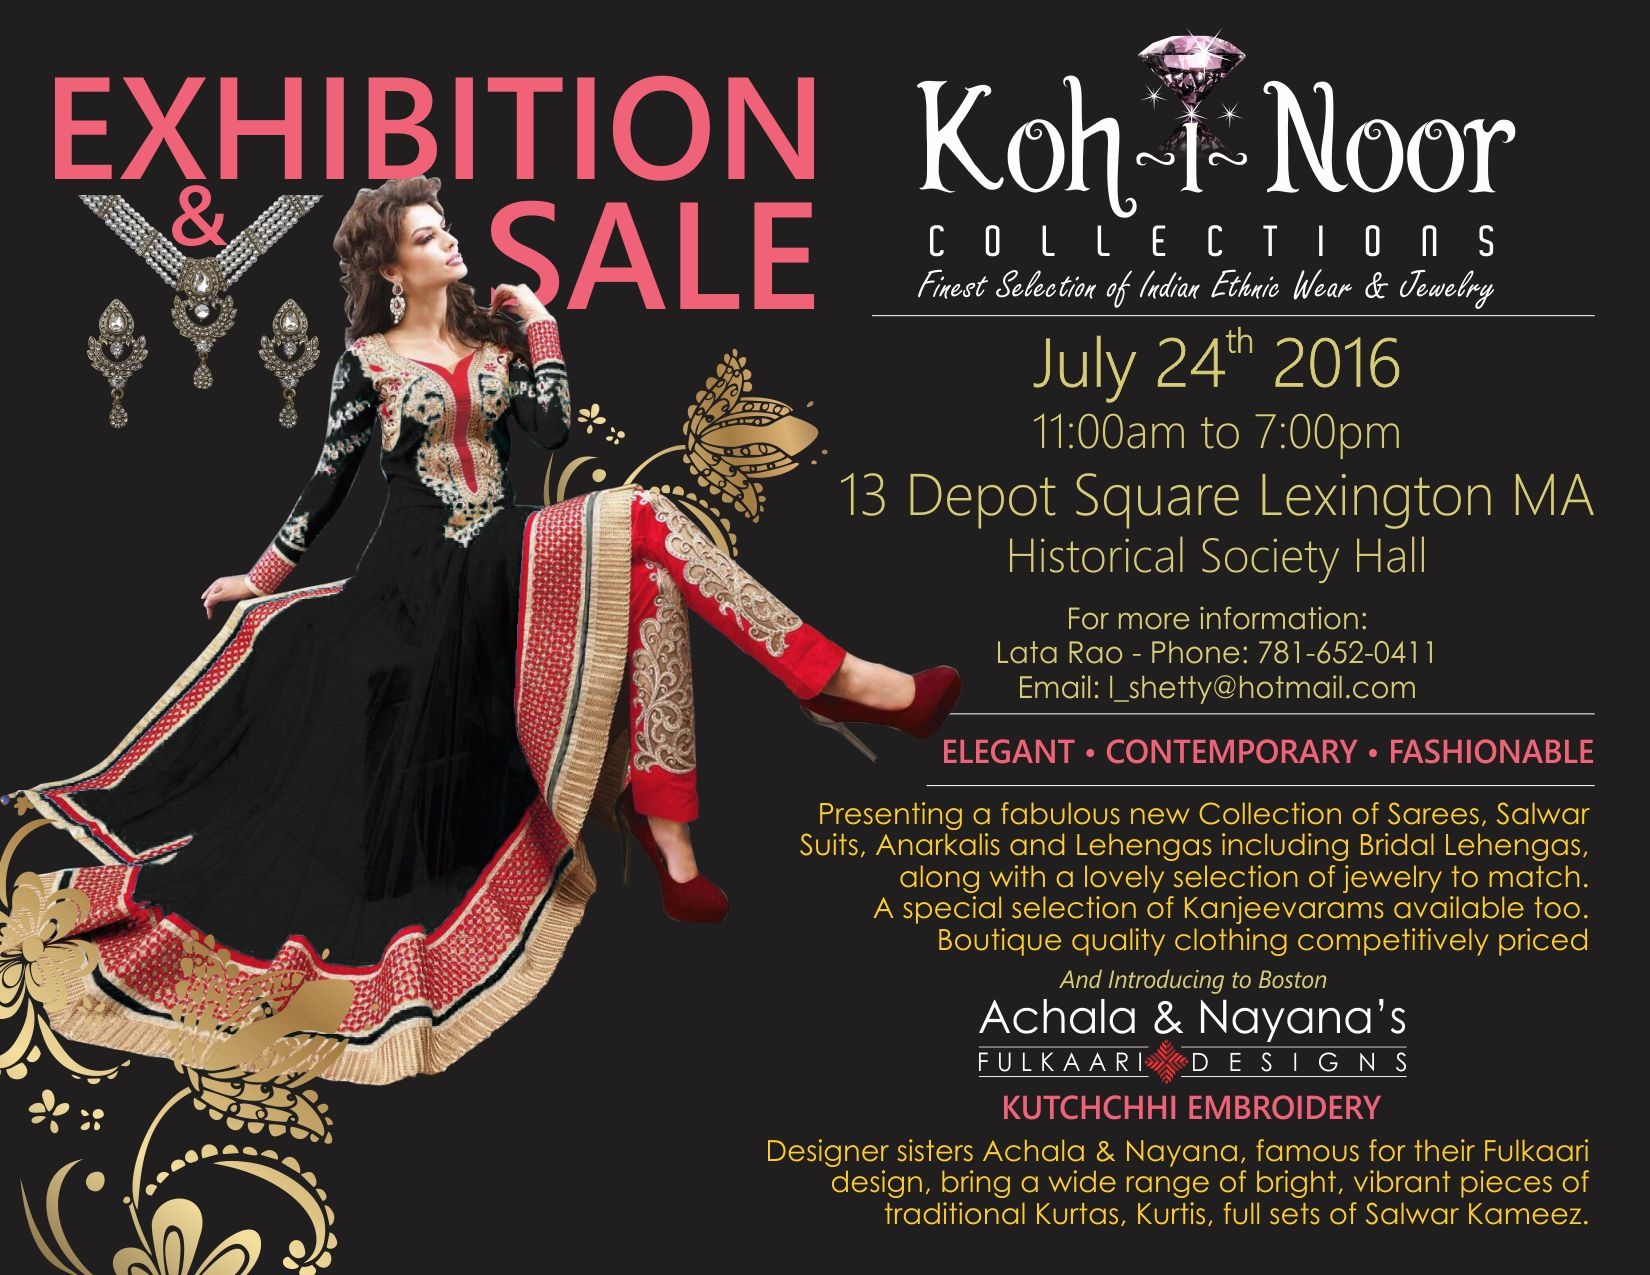 Exhibition & Sale of Ethnic Indian Clothes & Jewelry [07/24/16]